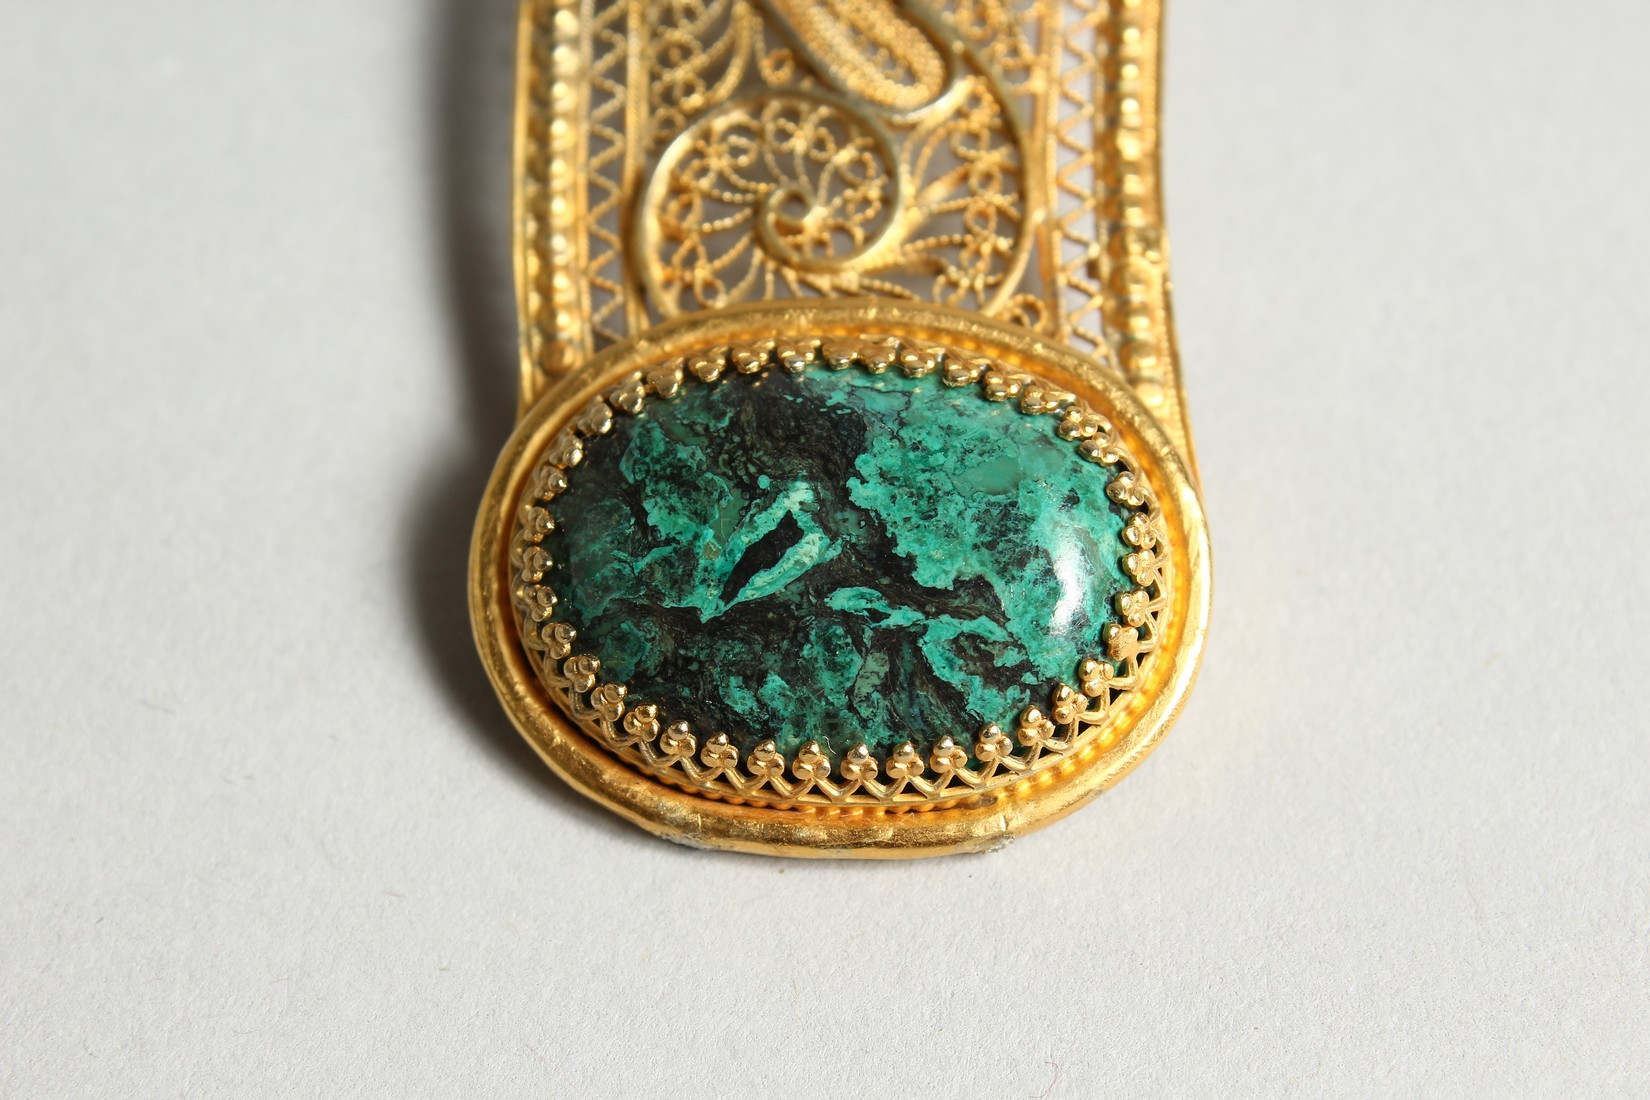 A FILEGREE AND GREEN STONE PENDANT AND CHAIN - Image 3 of 5